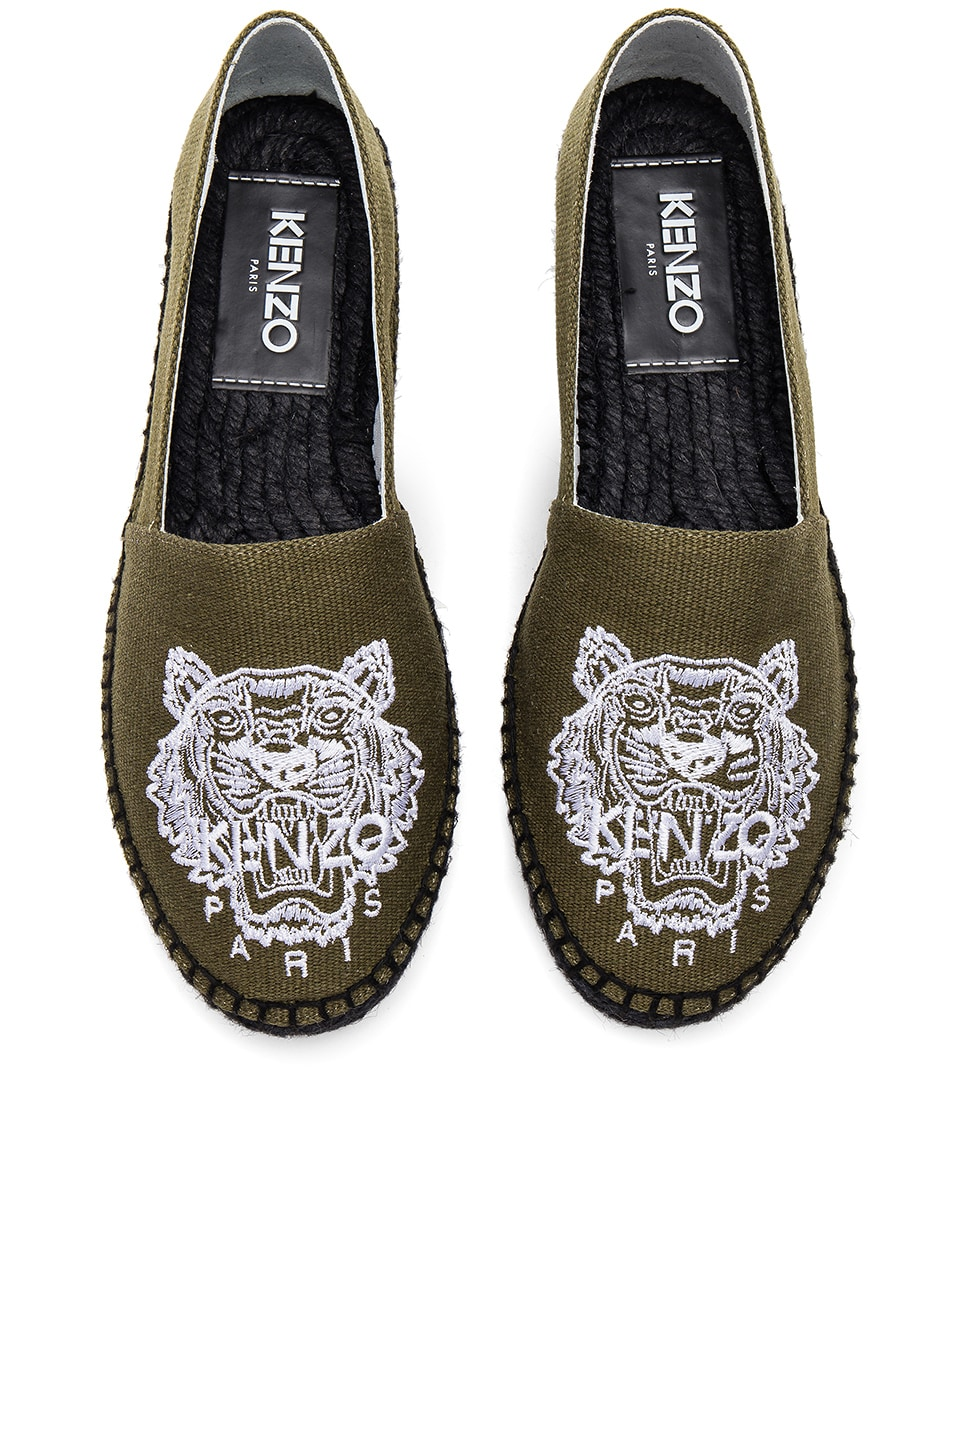 Kenzo Tiger Espadrilles in Military Green